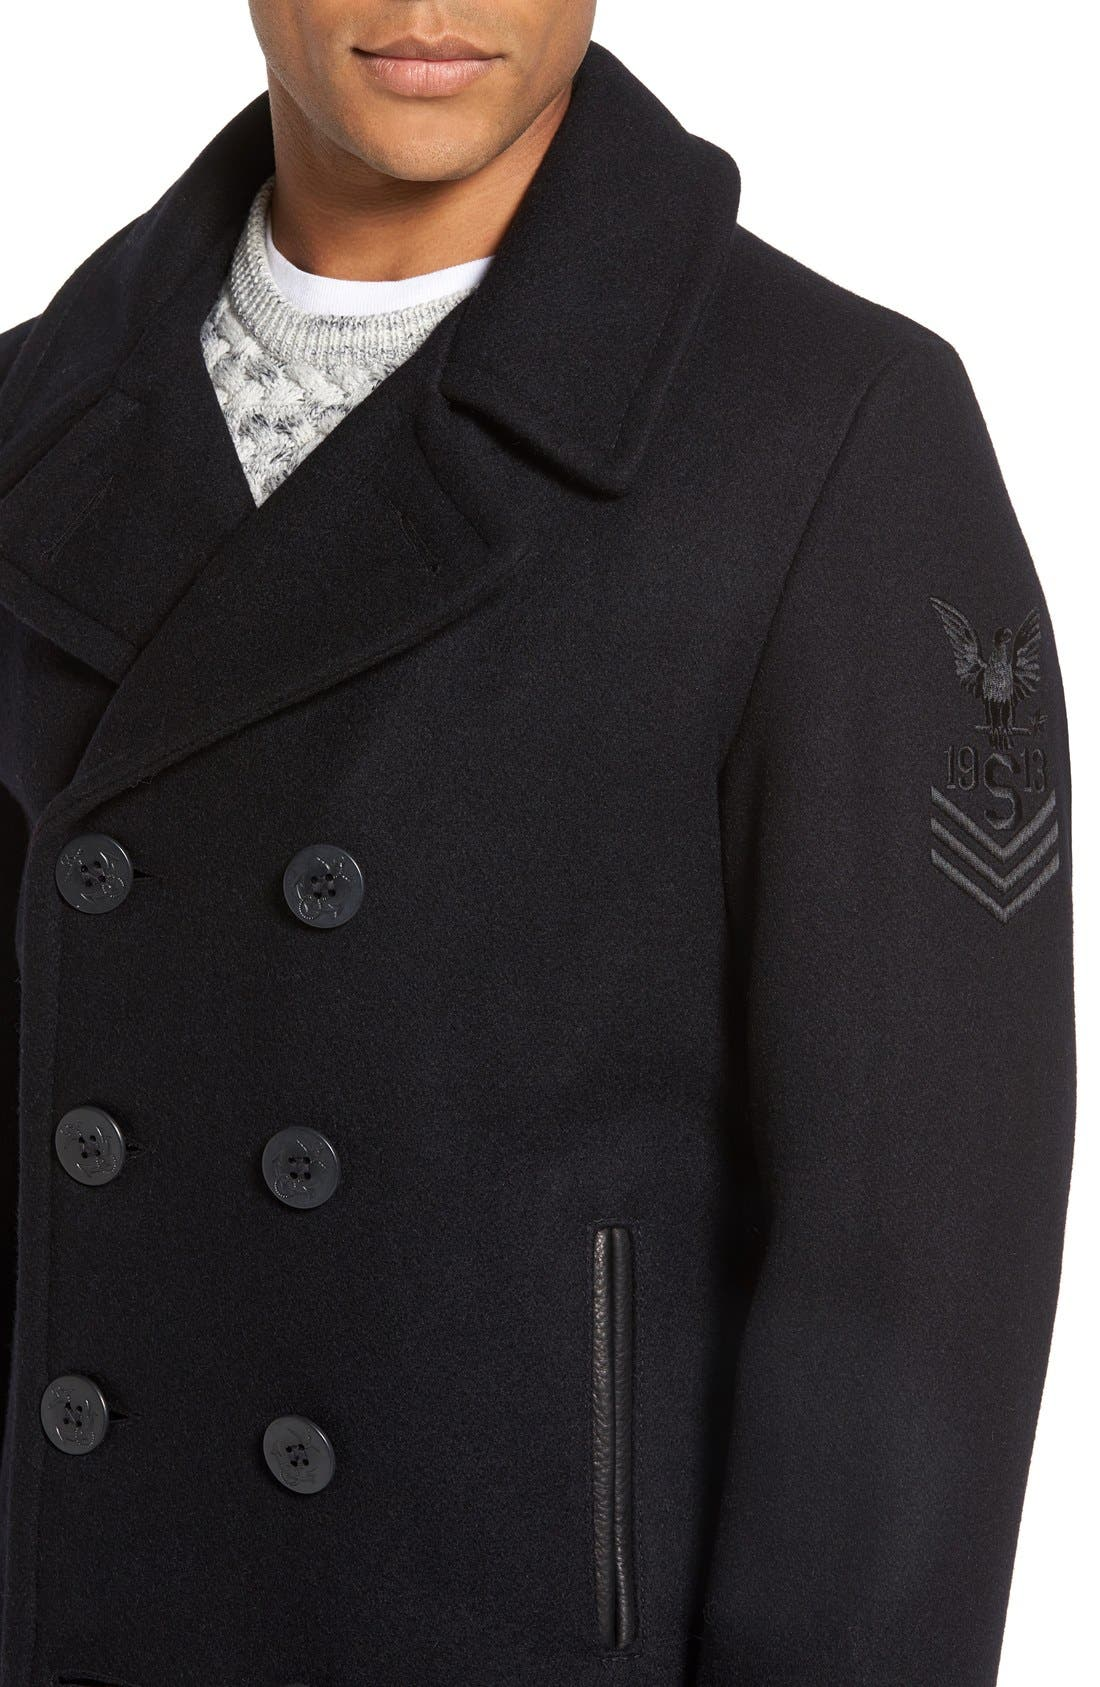 Embroidered Wool Blend Peacoat,                             Alternate thumbnail 4, color,                             Navy